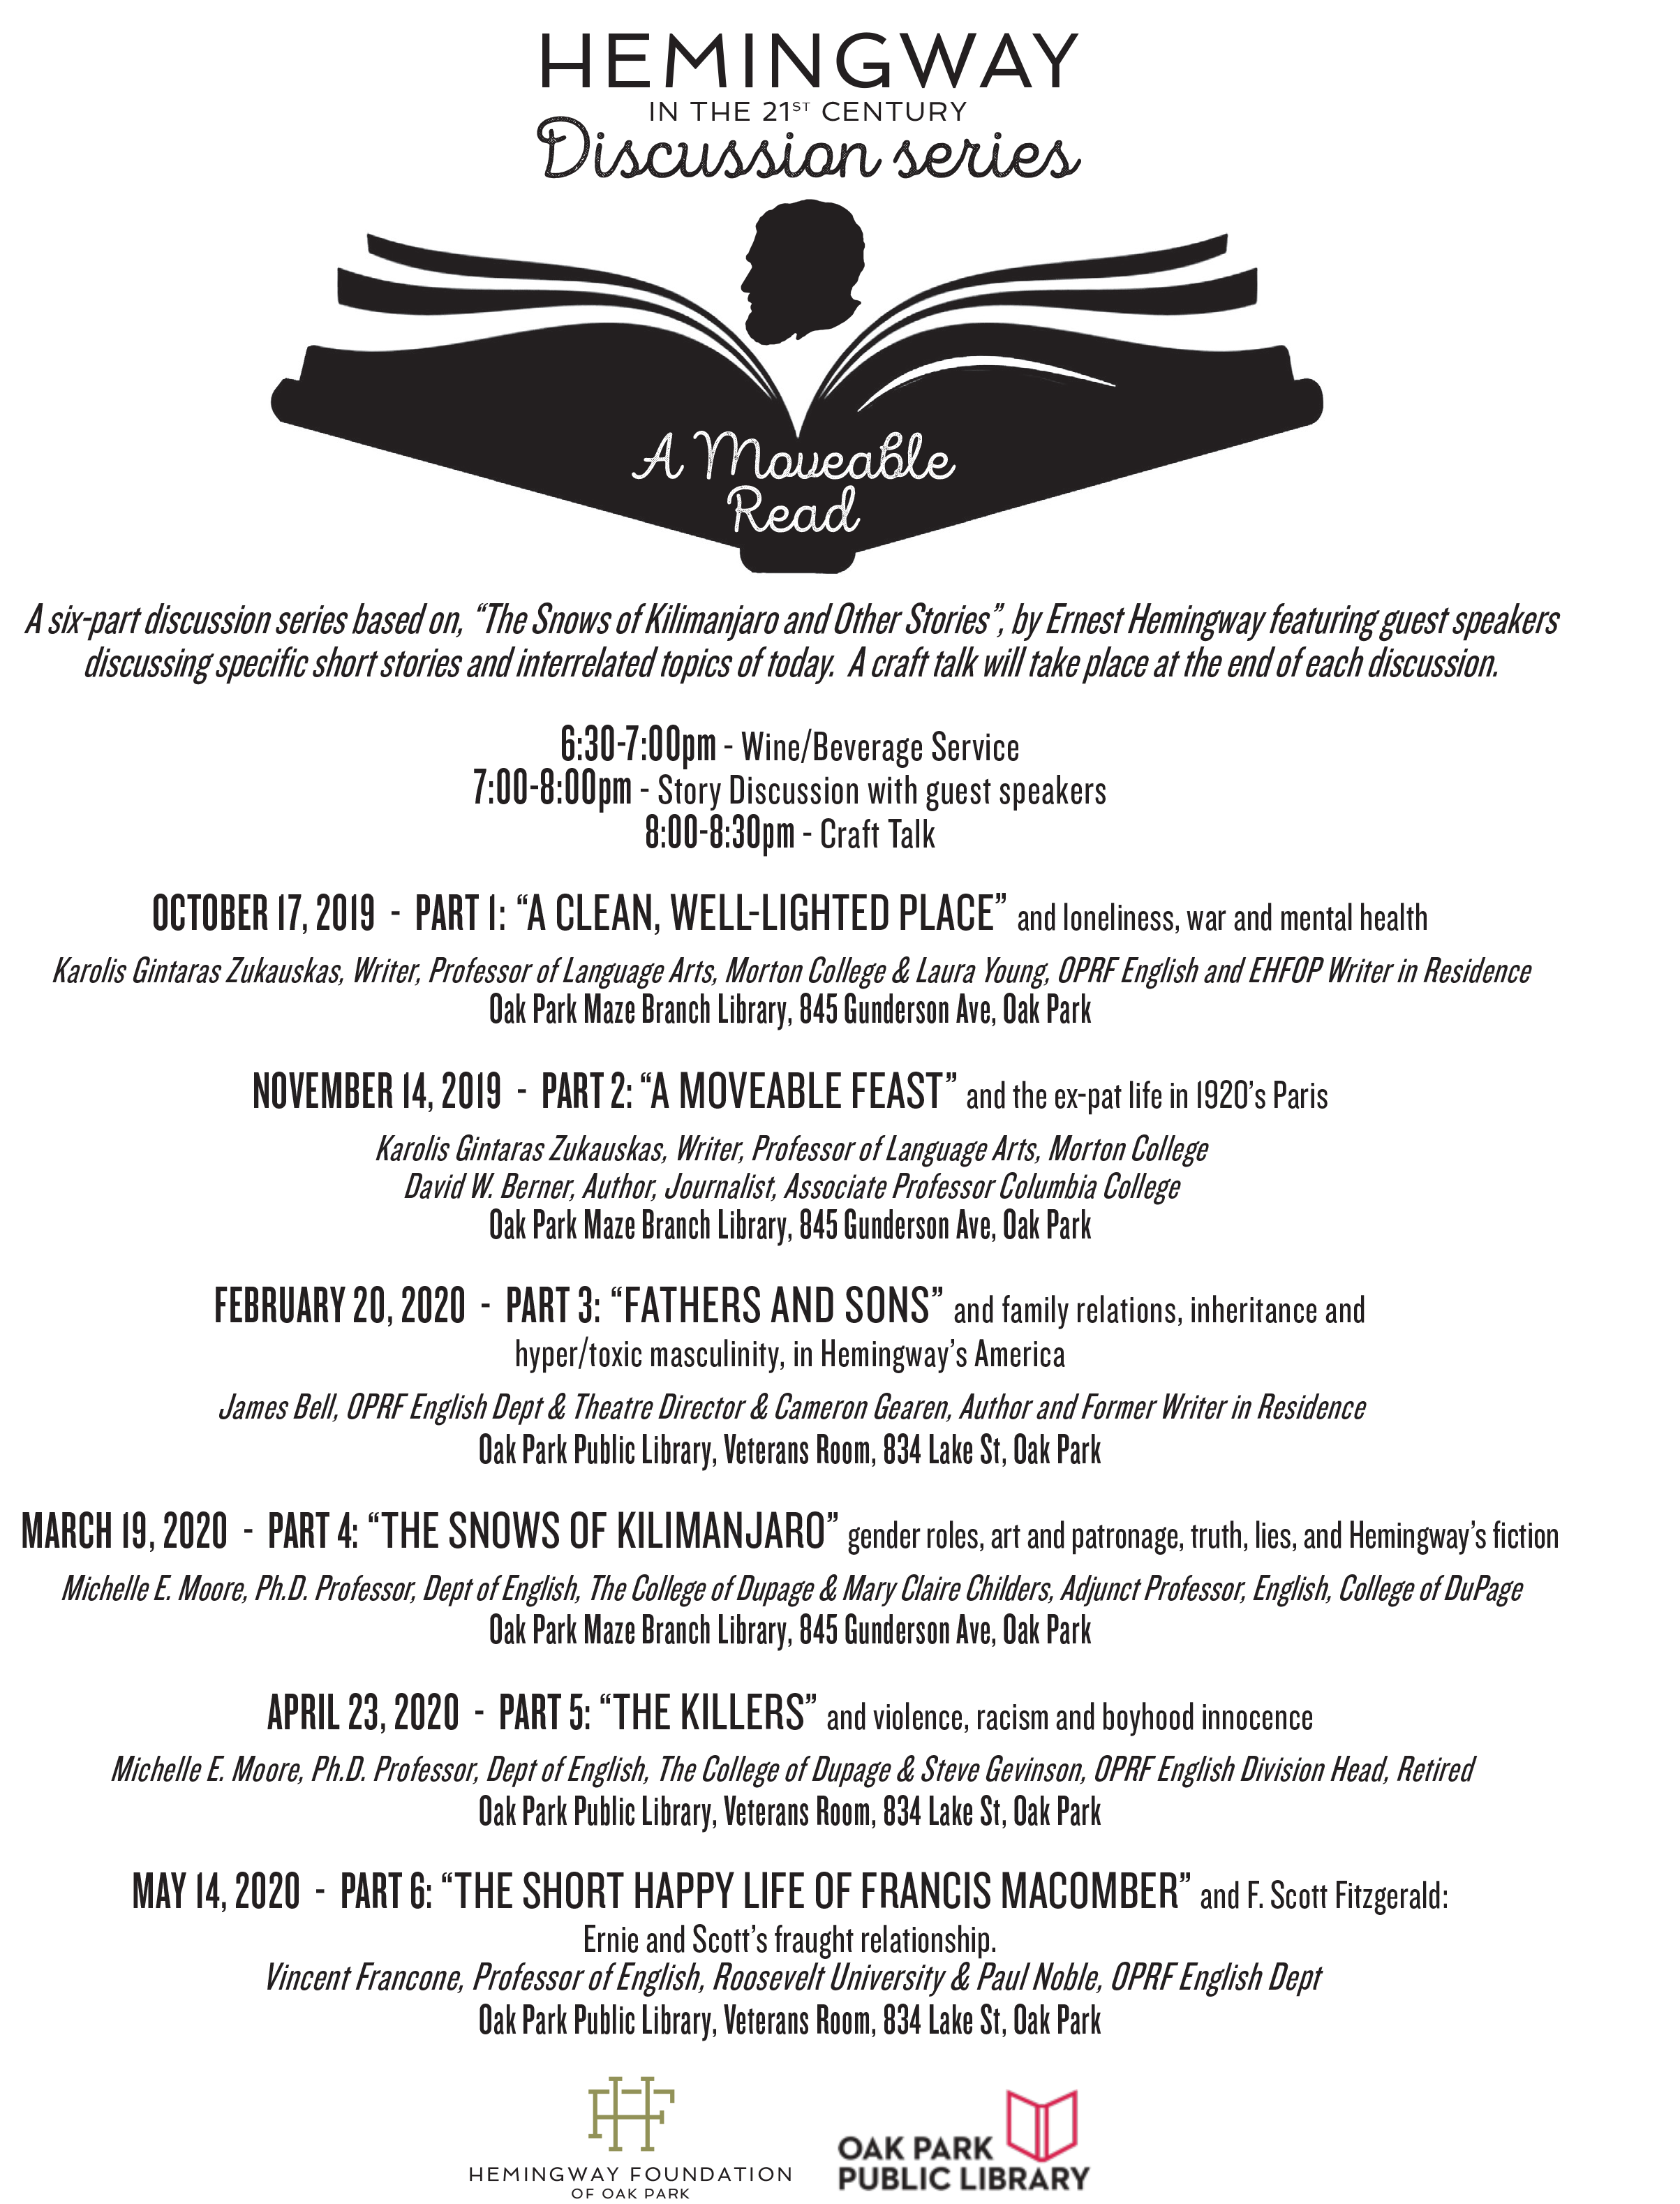 Moveable Read Hemingway Discussion Series Flyer 2019-20.png